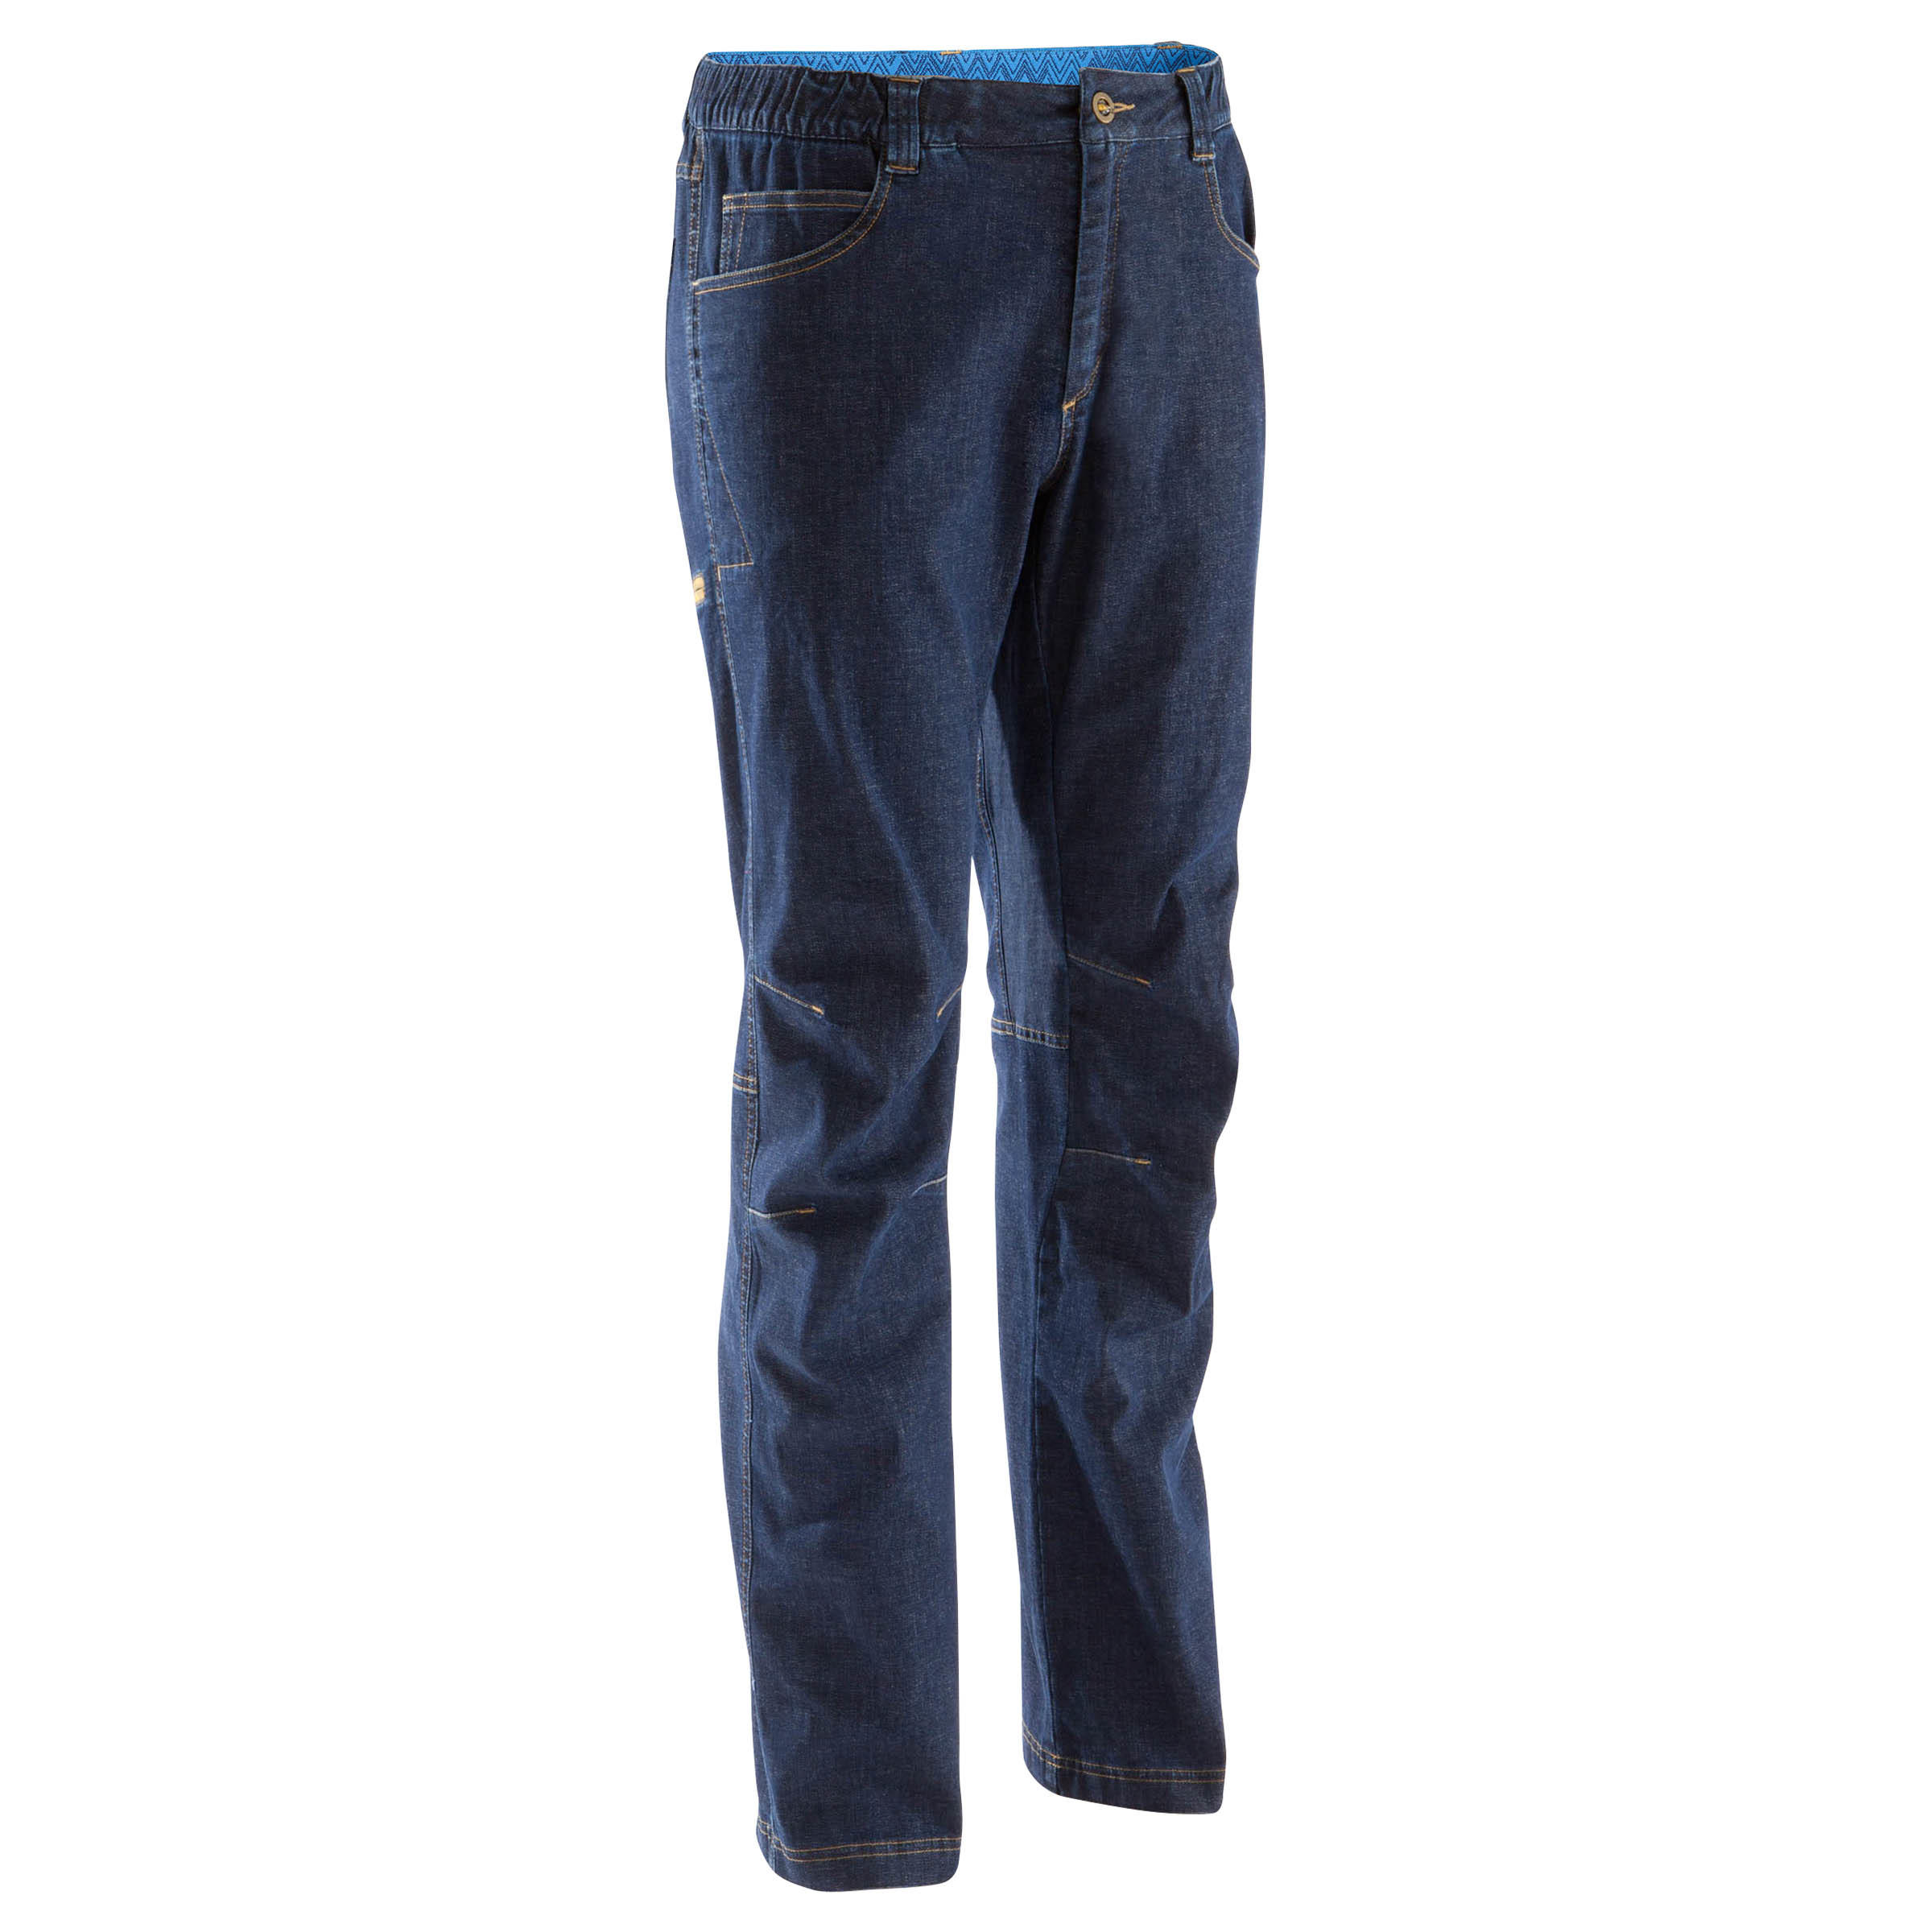 JEAN 2 HOMME BLUE